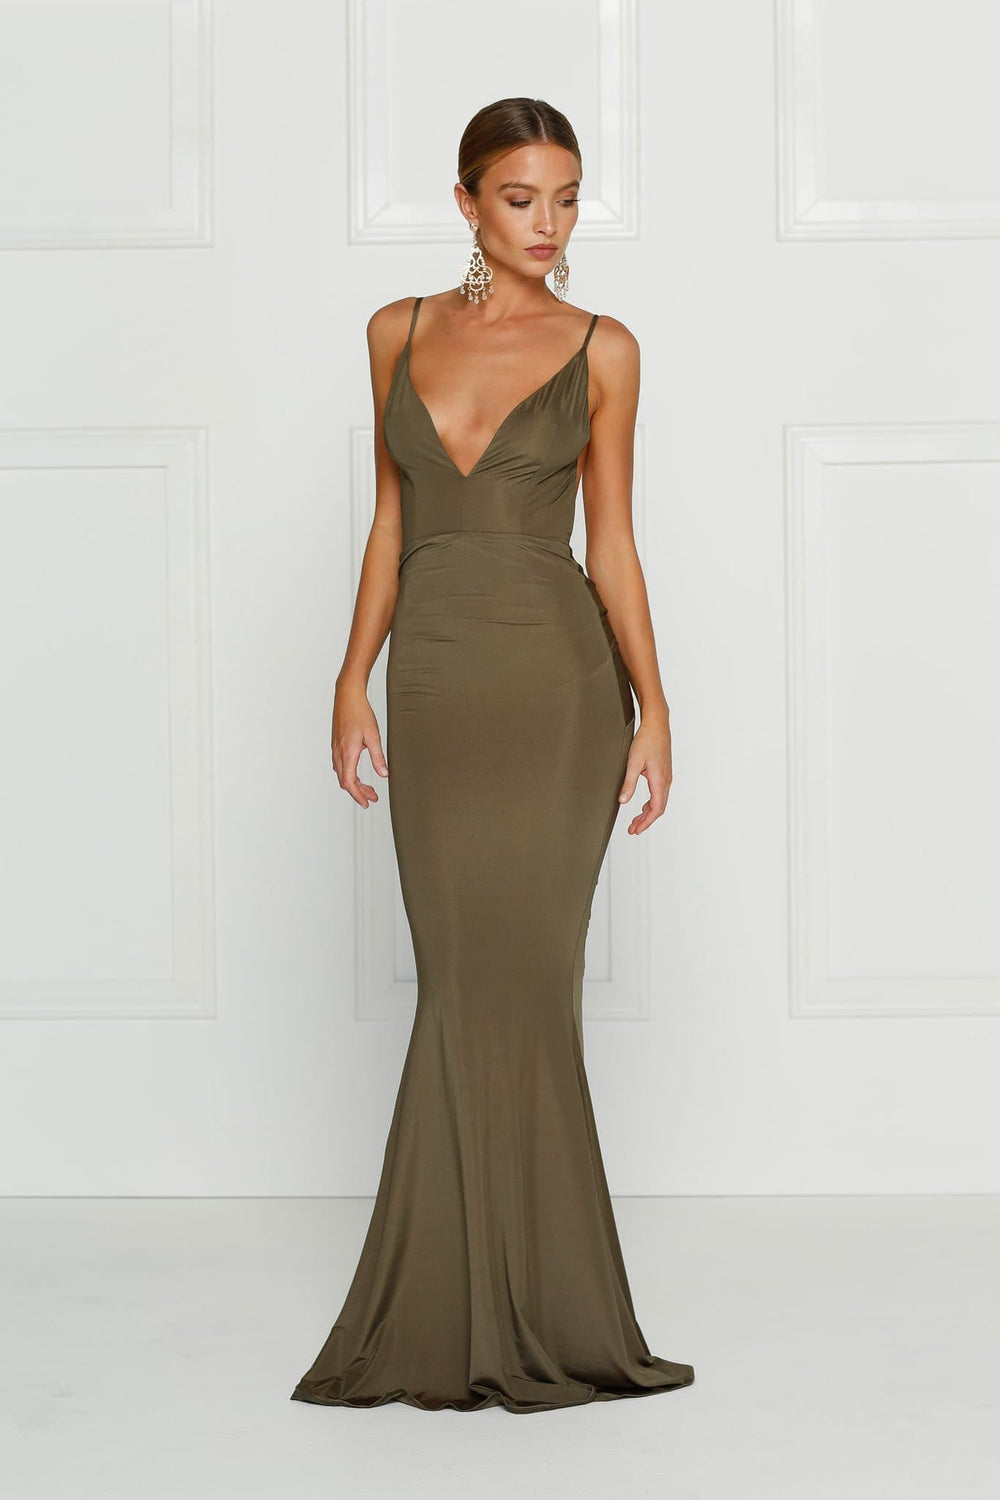 Penelope Luxe - Olive Backless Dress with Back Knot Design